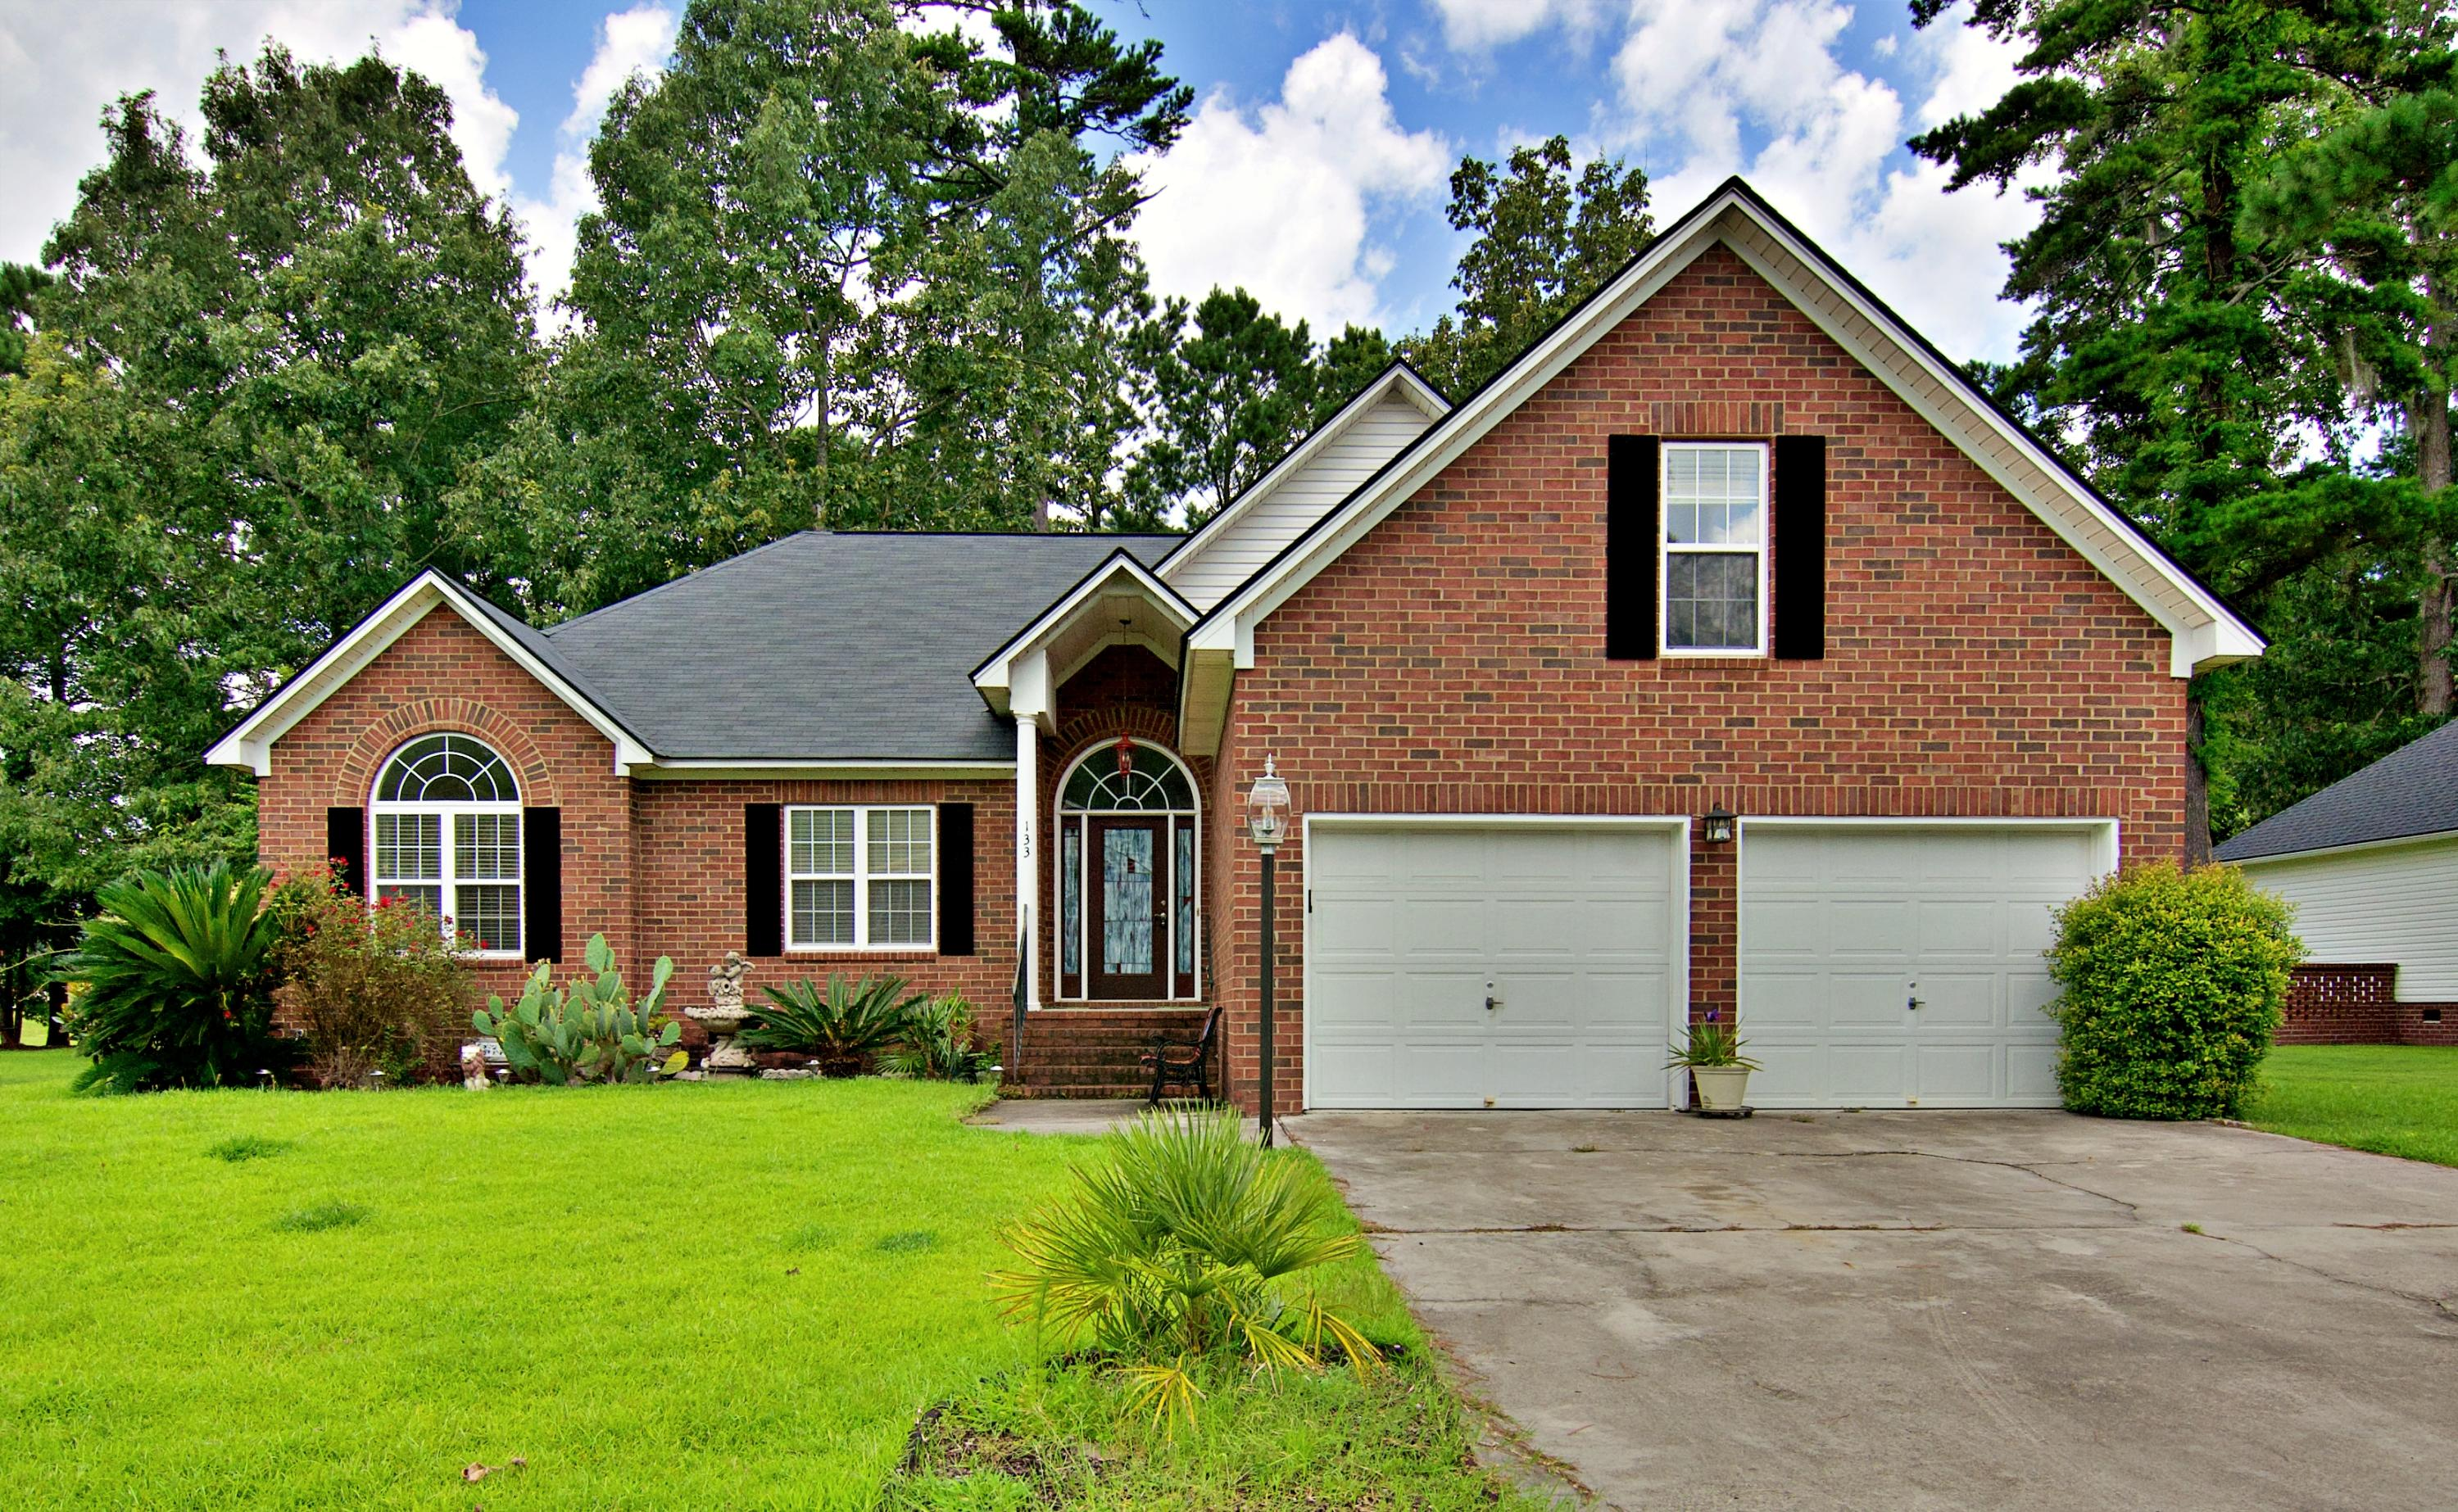 133 Jamesford Street Goose Creek, SC 29445